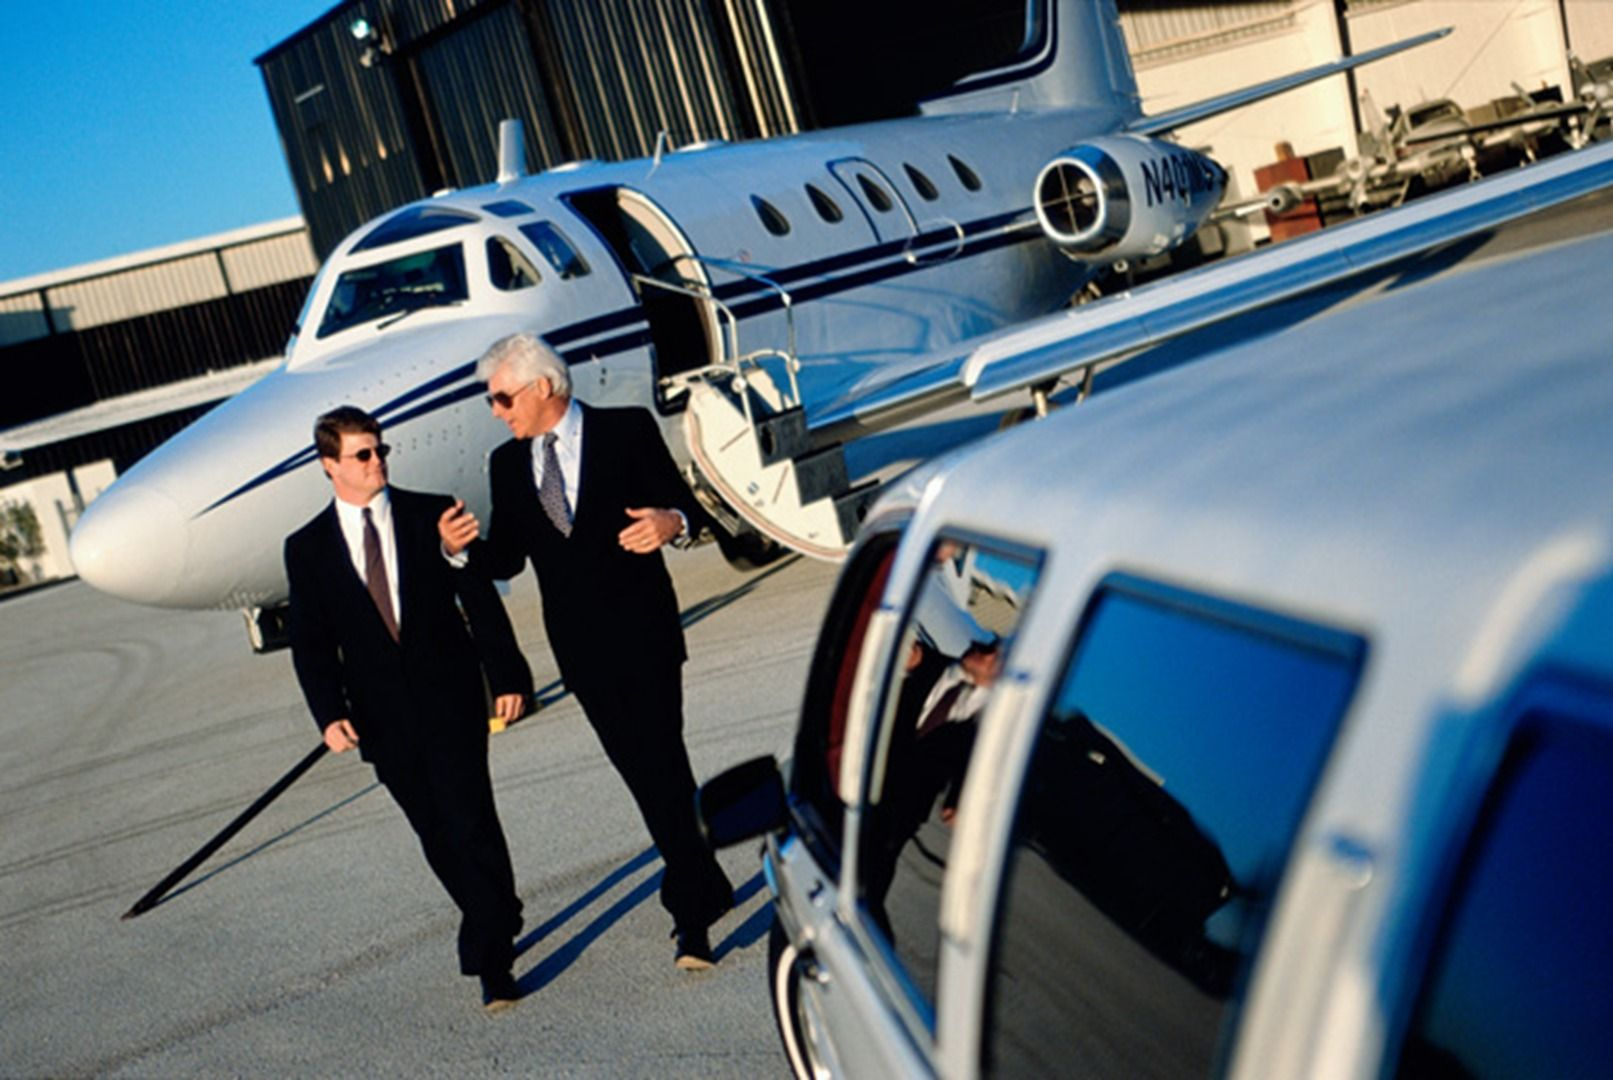 Landing to airport and facing hustle to find corporate car